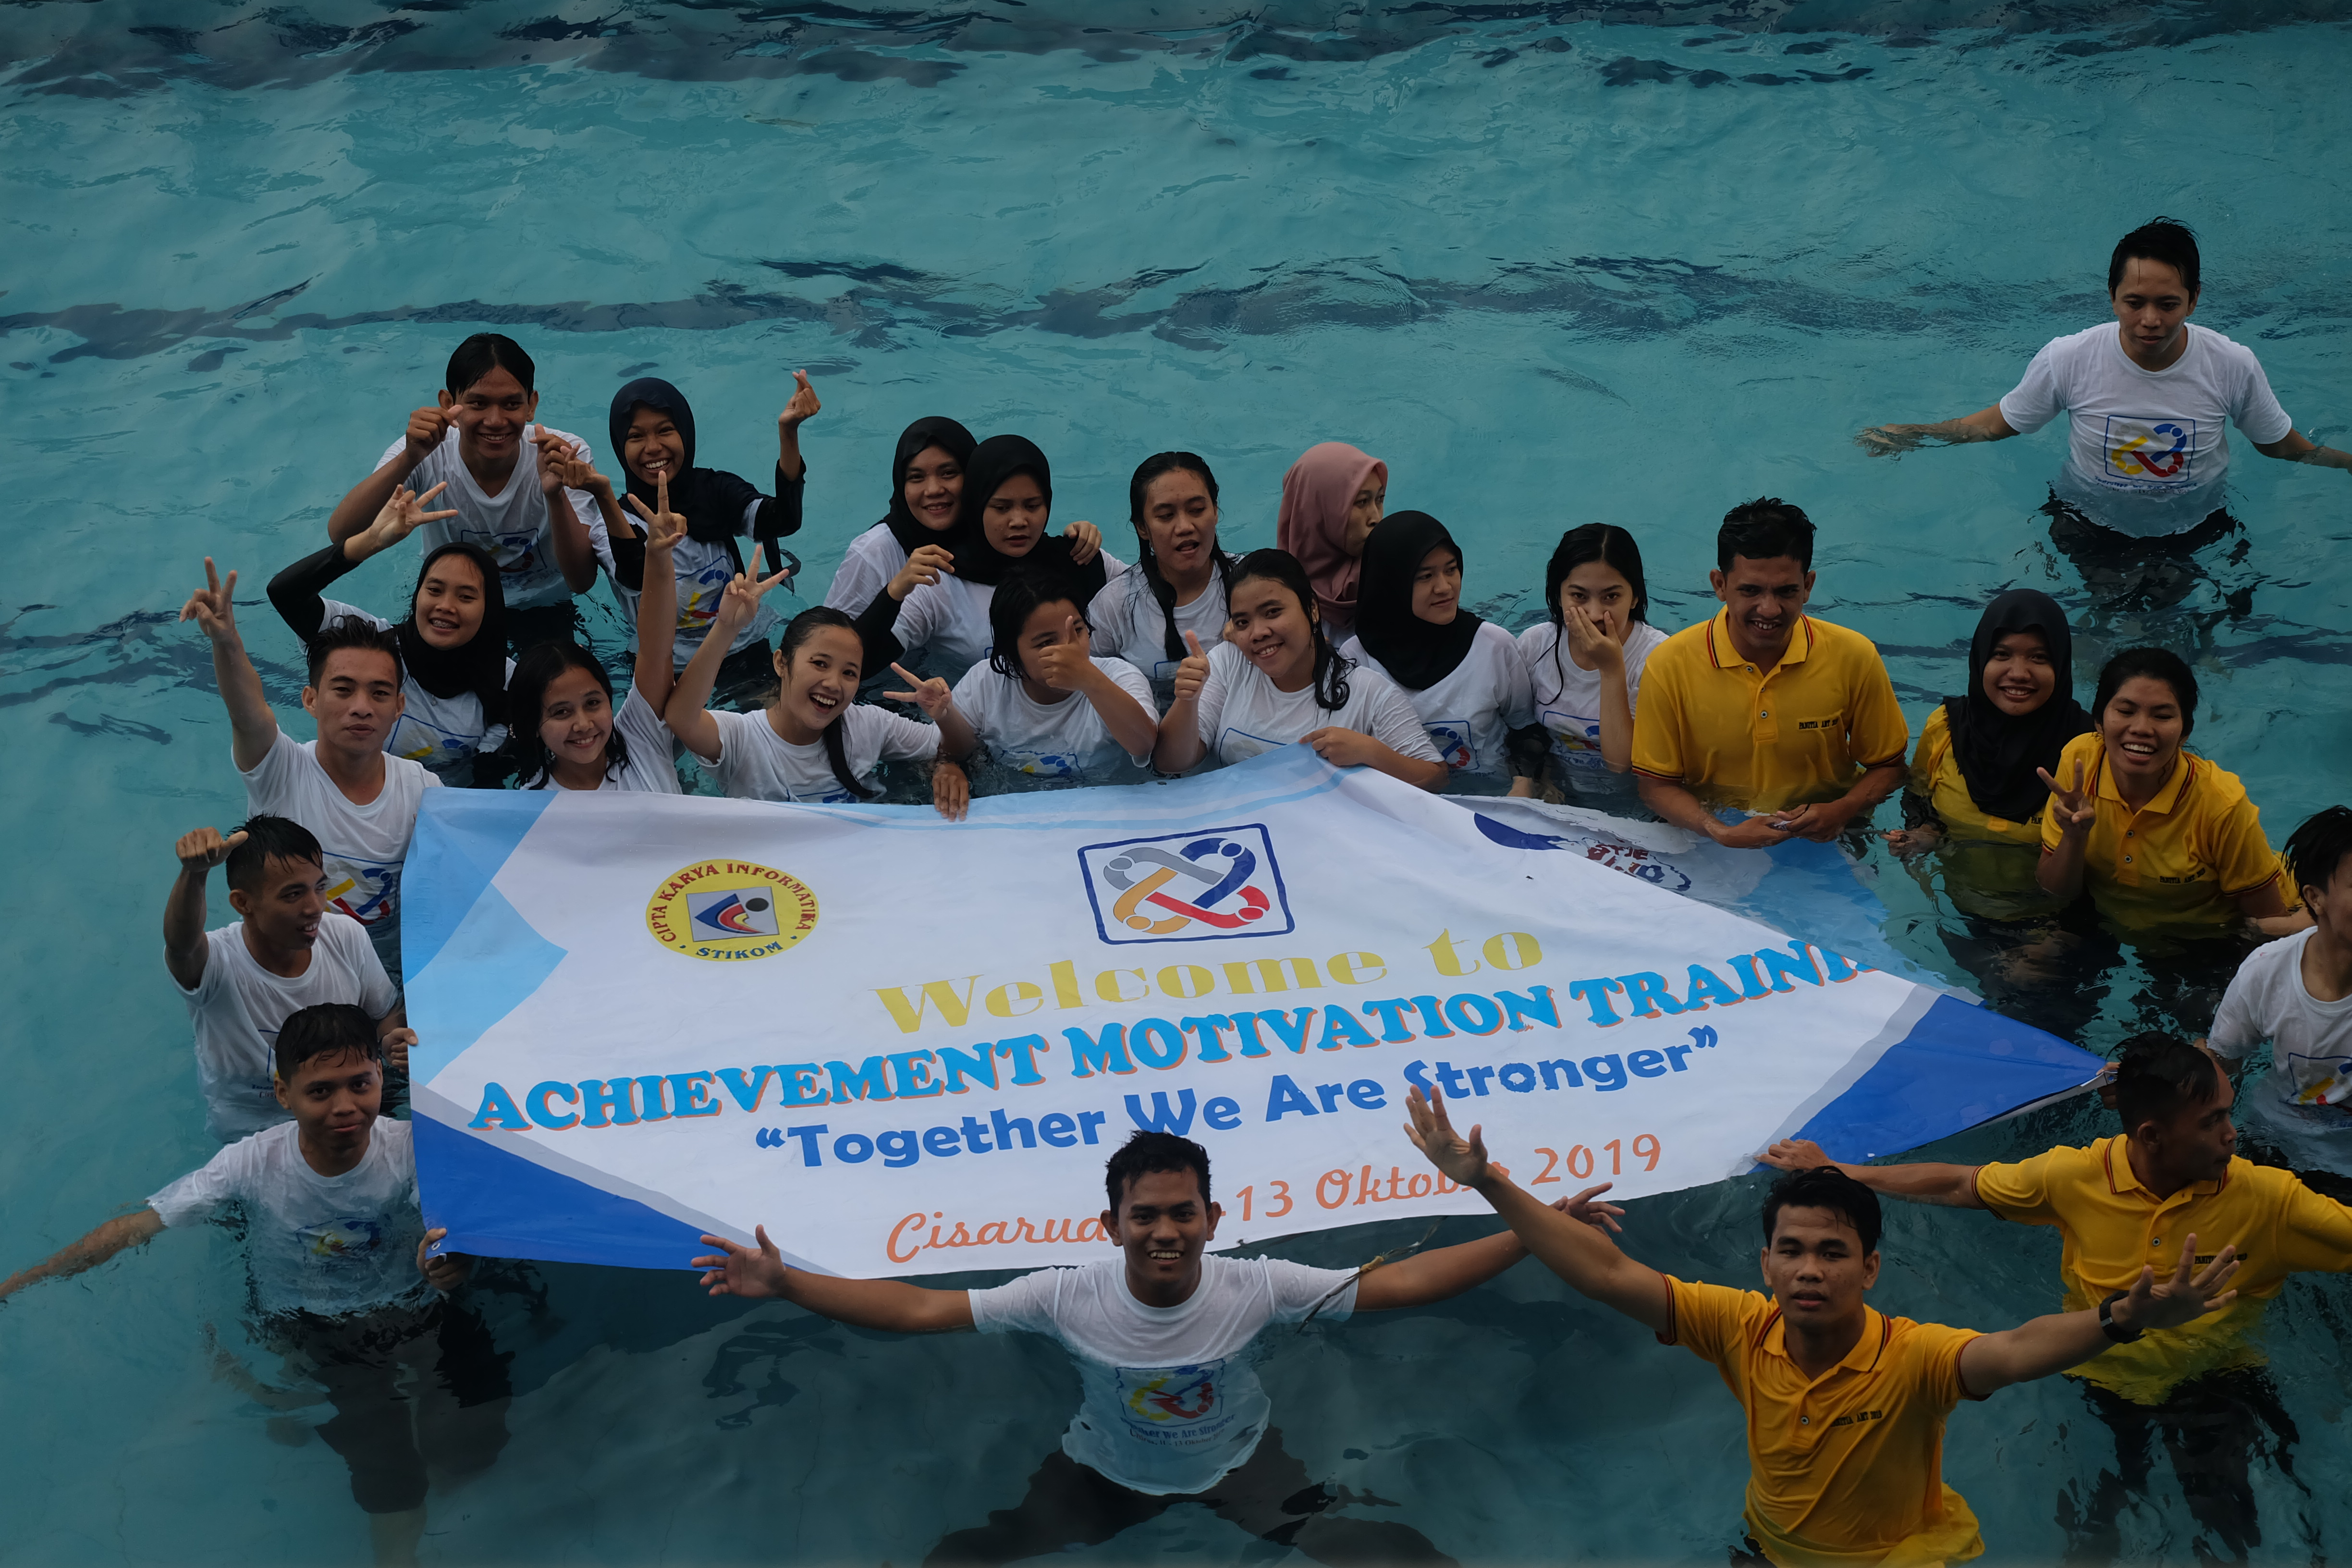 Achievement Motivation Training 2019